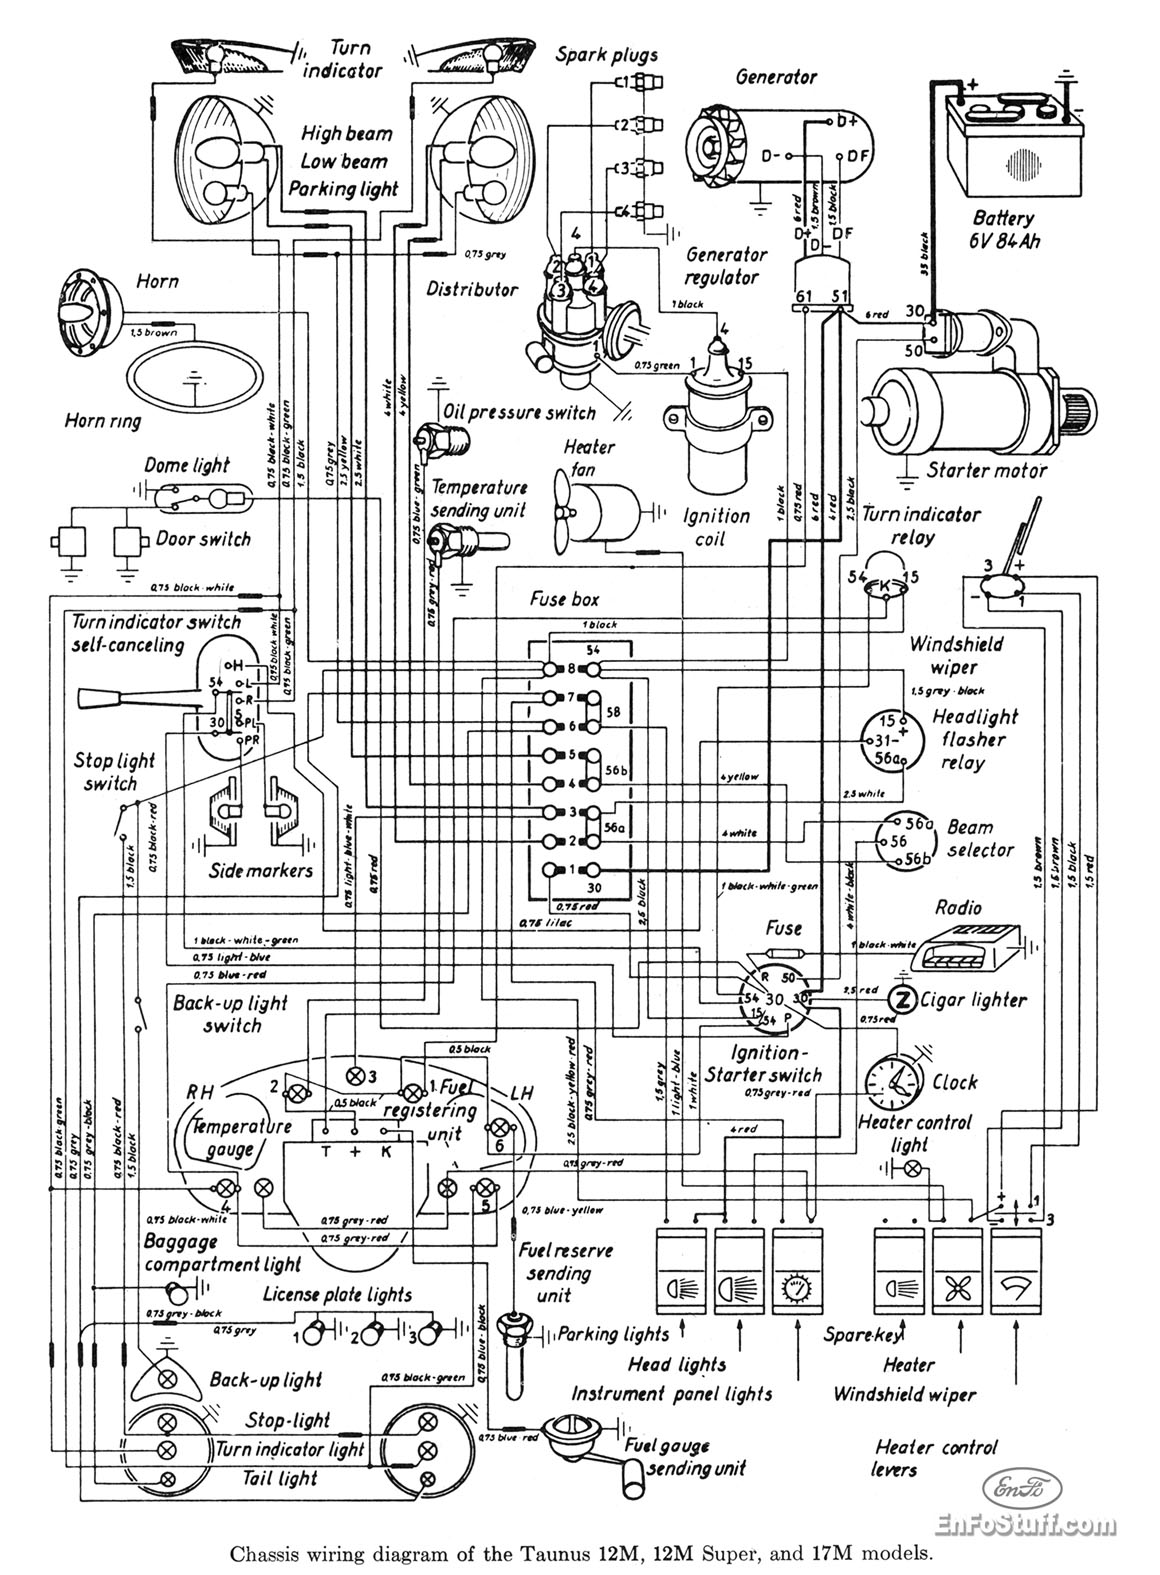 Wiring Diagram 78 Ford Granada Diy Enthusiasts Diagrams Wire Center U2022 Rh Masinisa Co 1978 F150 1977